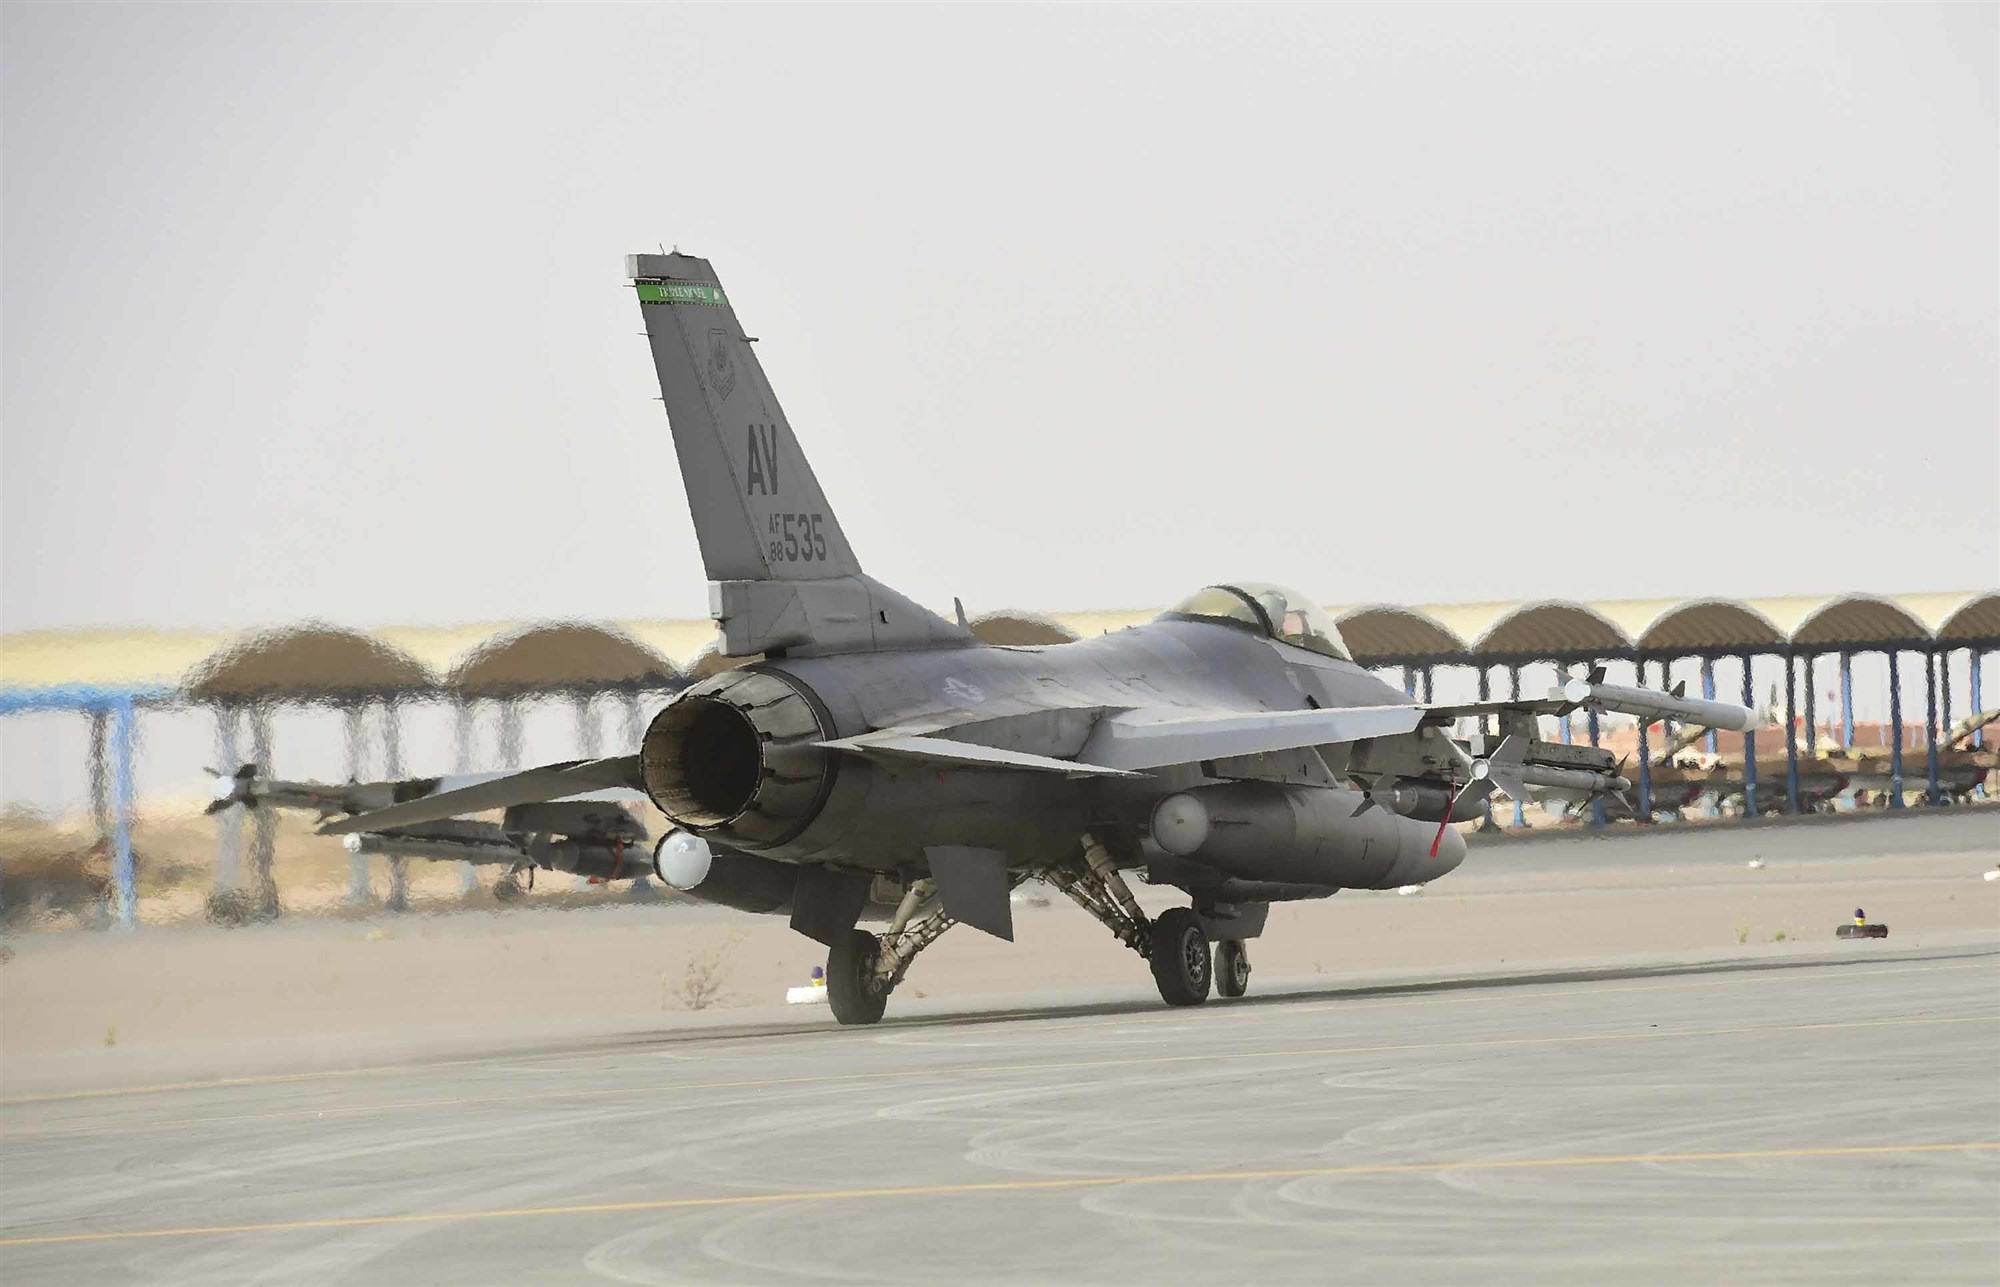 An F-16C Fighting Falcon from the 555th Expeditionary Fighter Squadron taxis during Exercise African Lion 2019, at Ben Guerir, Morocco, March 25, 2019. The exercise took place in the Kingdom of Morocco and was sponsored by U.S. Africa Command. African Lion 2019 is a Chairman of the Joint Chiefs of Staff-sponsored, U.S. Africa Command-scheduled, U.S. Marine Corps Forces Europe and Africa-led, joint and combined exercise conducted in the Kingdom of Morocco with a spoke in Tunisia, and armed forces participants in from Canada, France, Senegal, Spain, and the United Kingdom. (U.S. Air Force photo by Staff Sgt. Ceaira Tinsley)